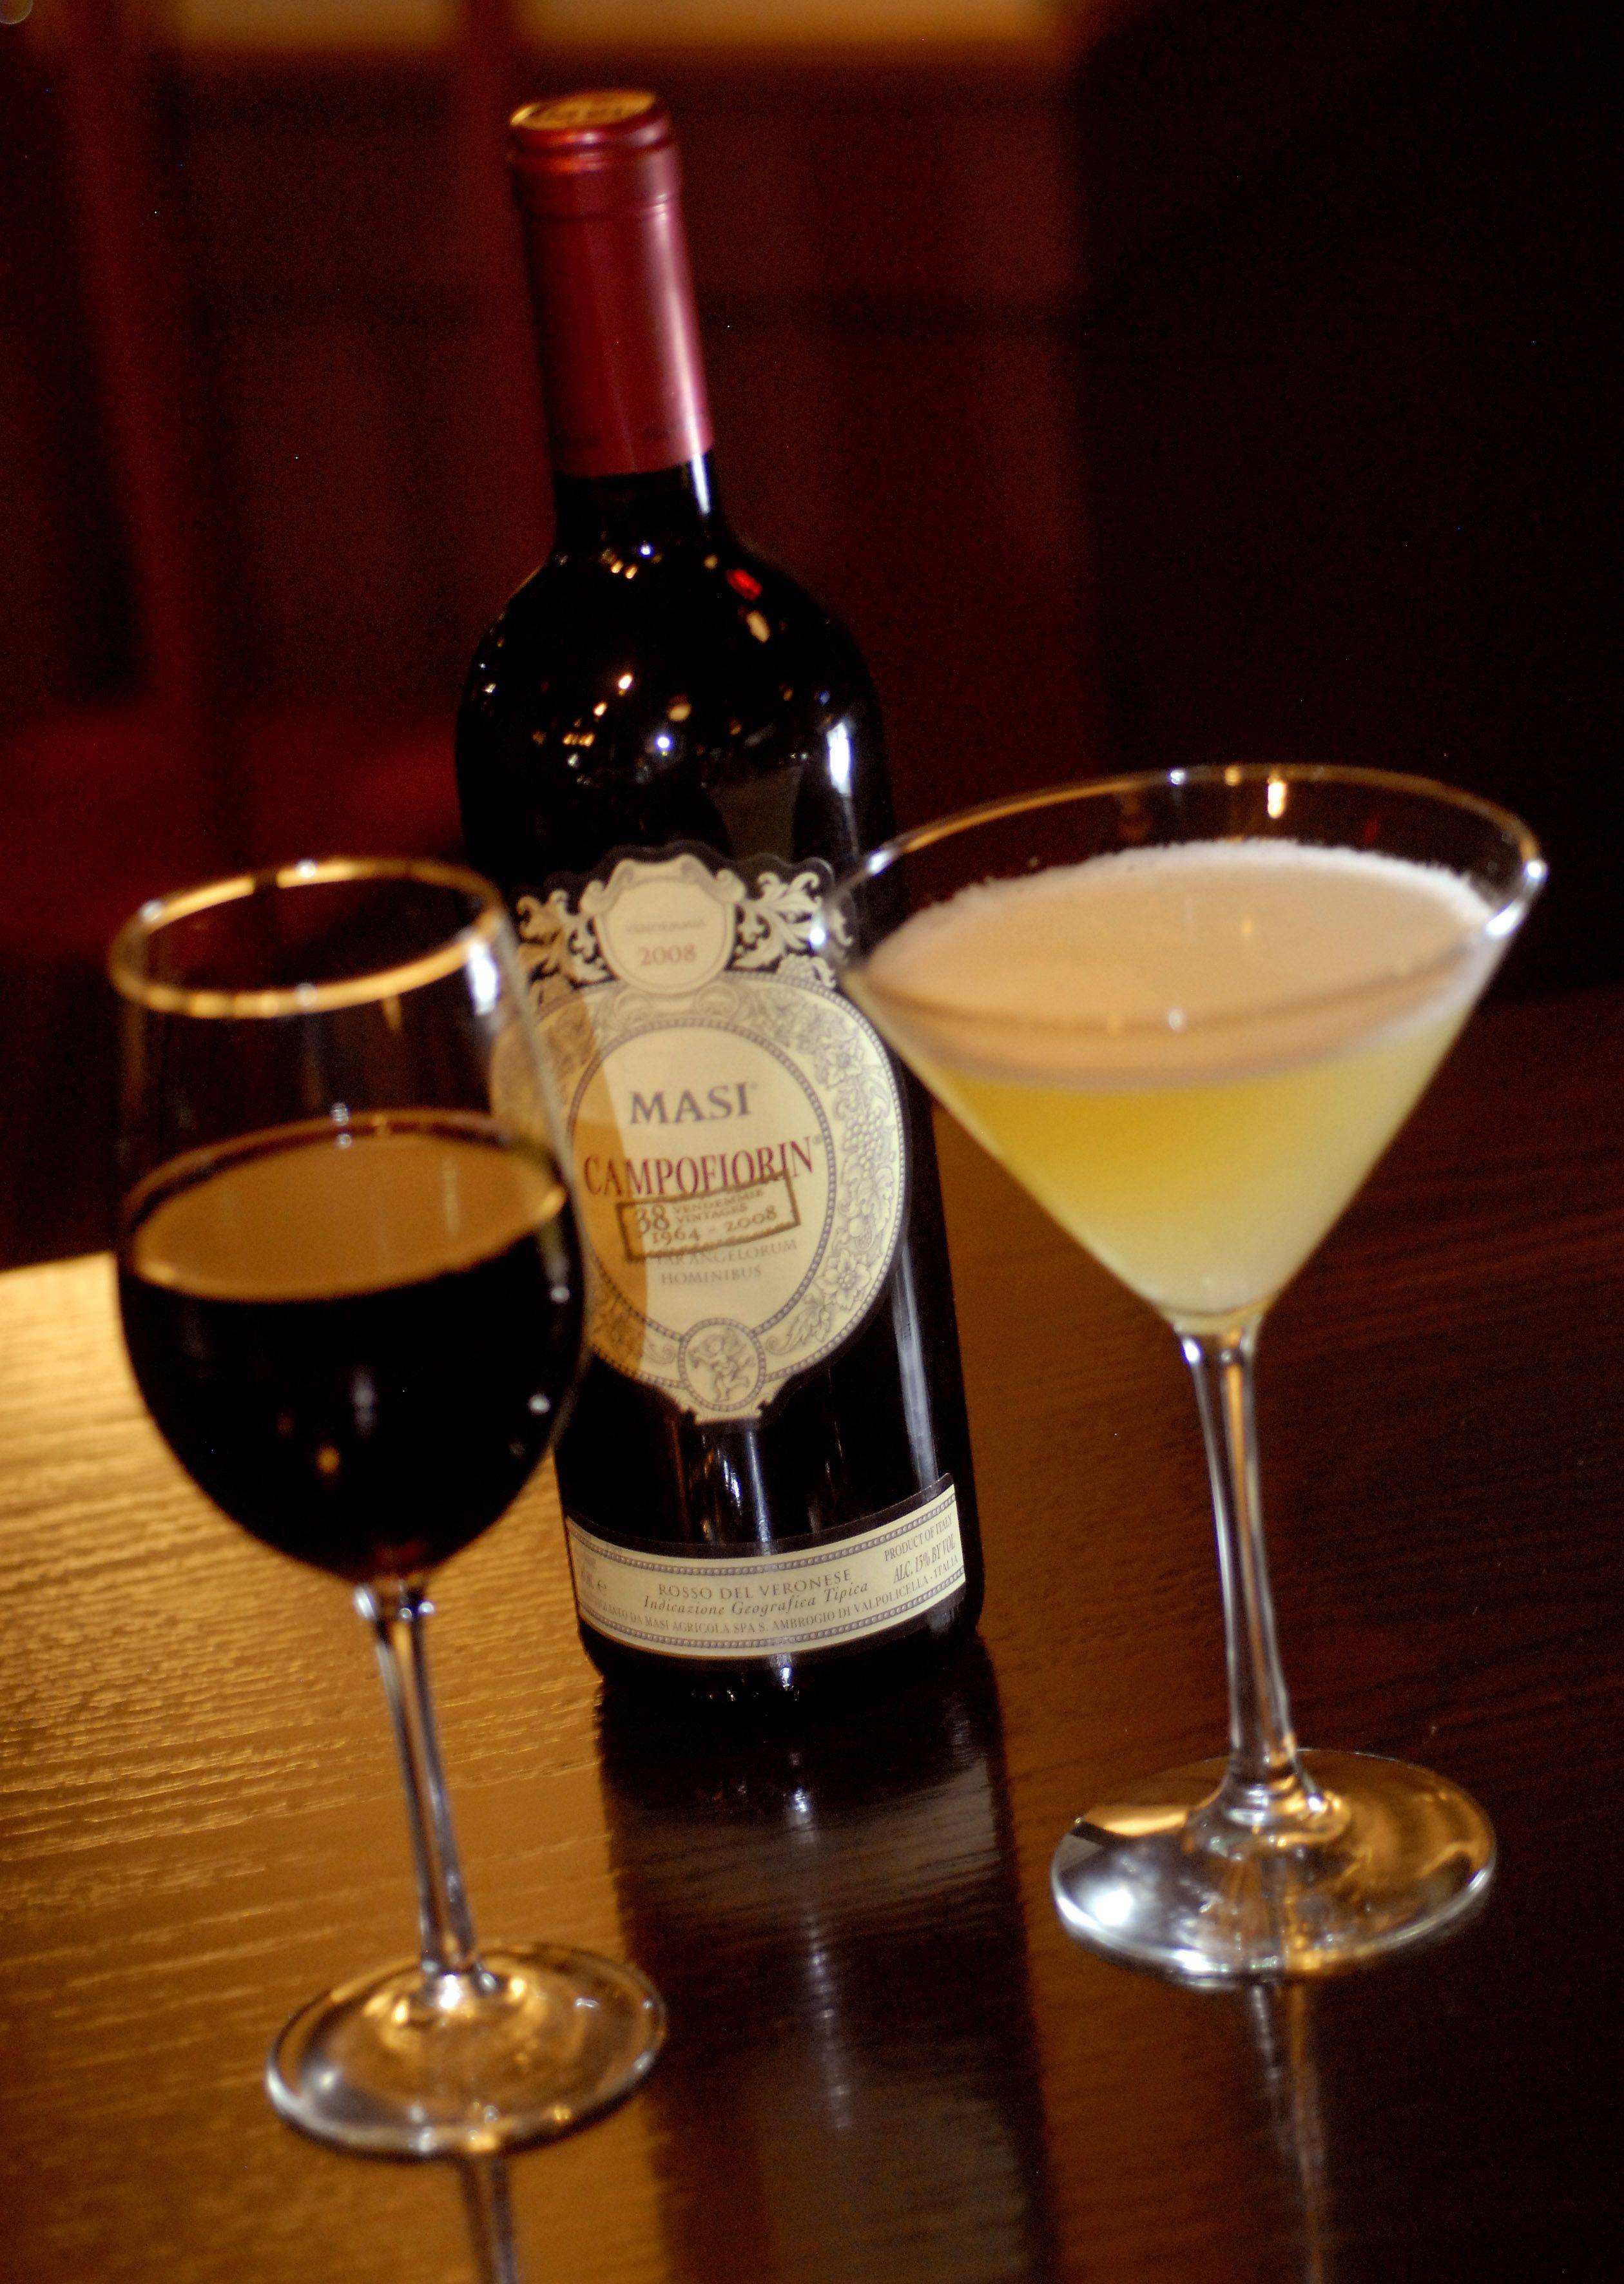 If beer isn't your thing, Wickets serves a number of wines by the glass as well as martinis. The Cake Martini is a specialty.